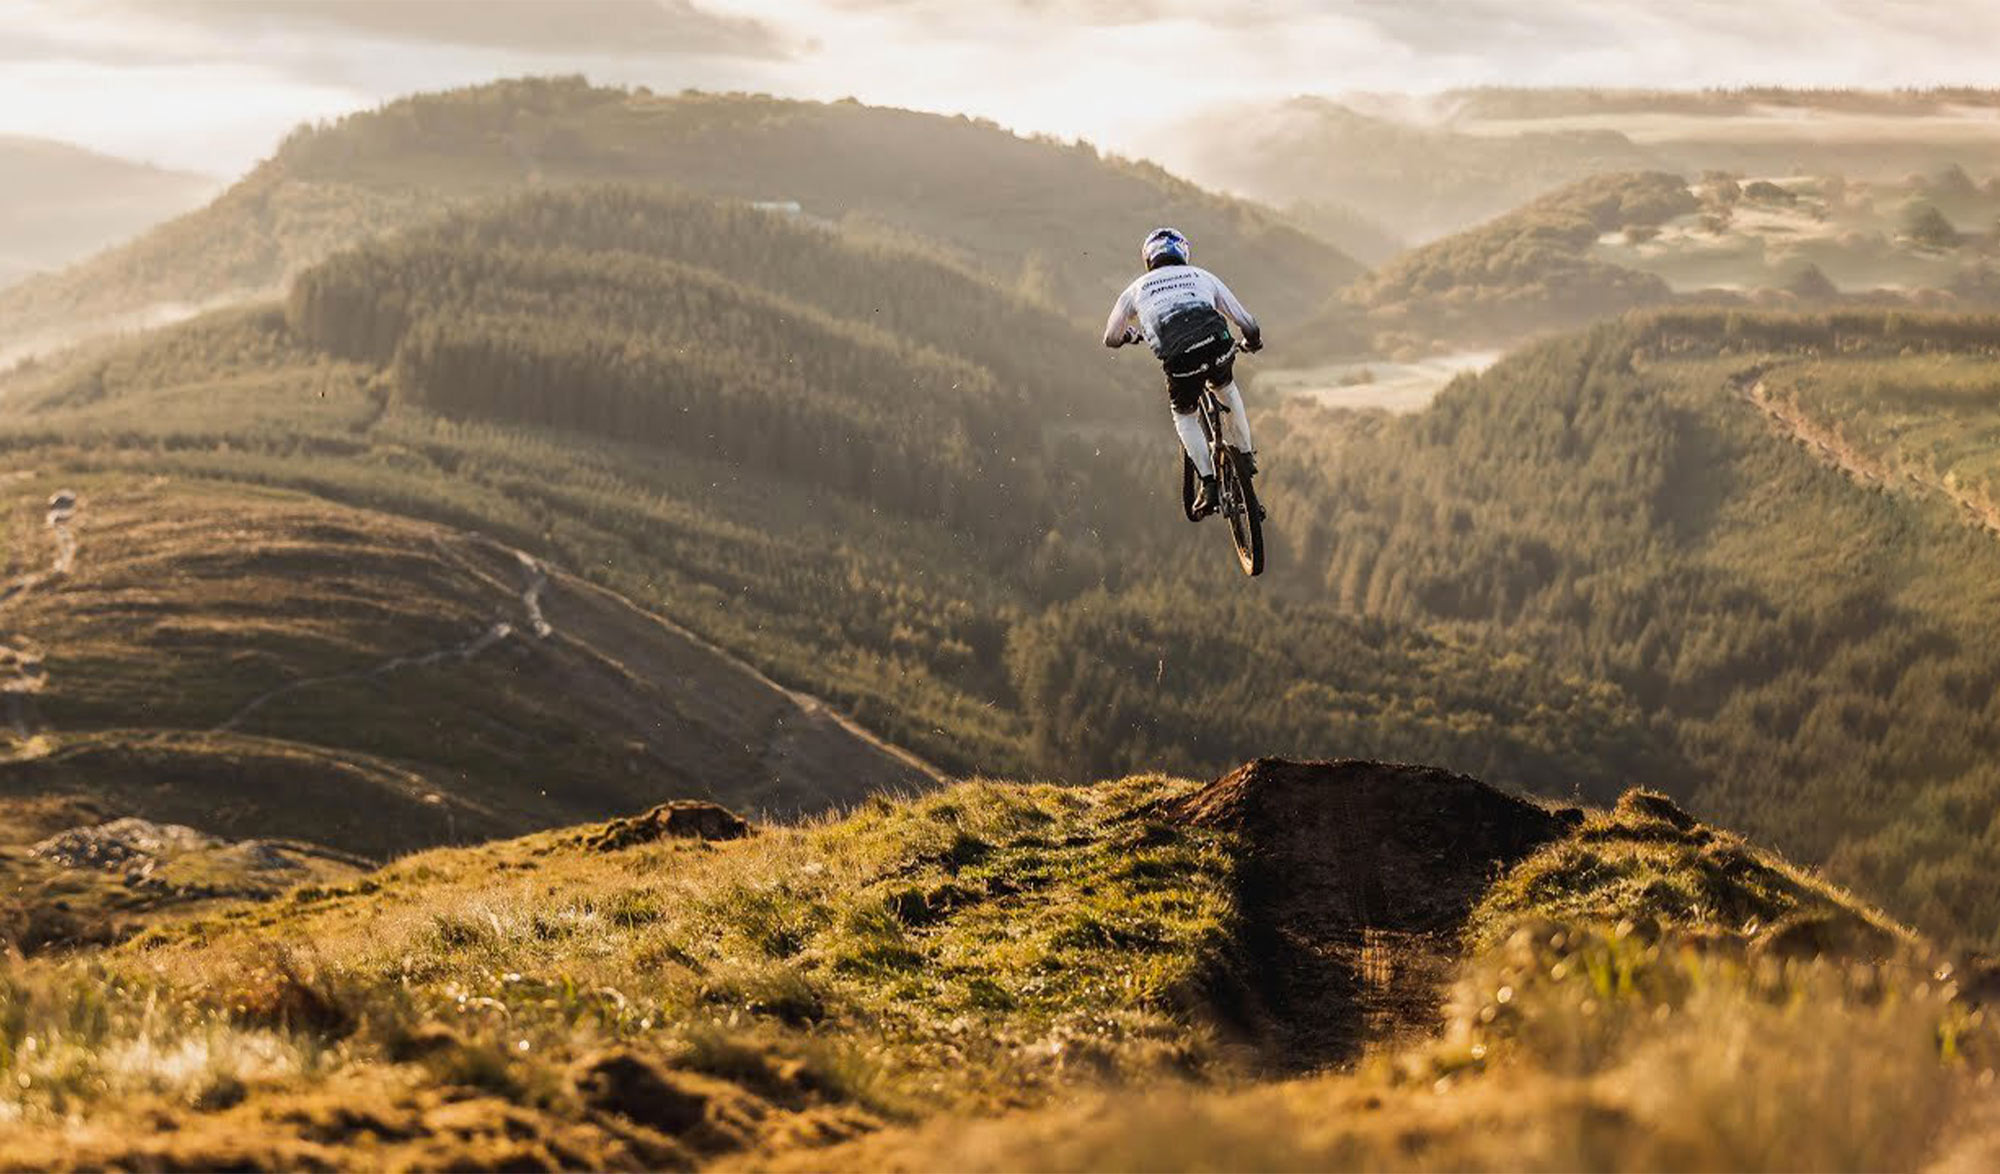 Gee Atheron ride The Ridgeline